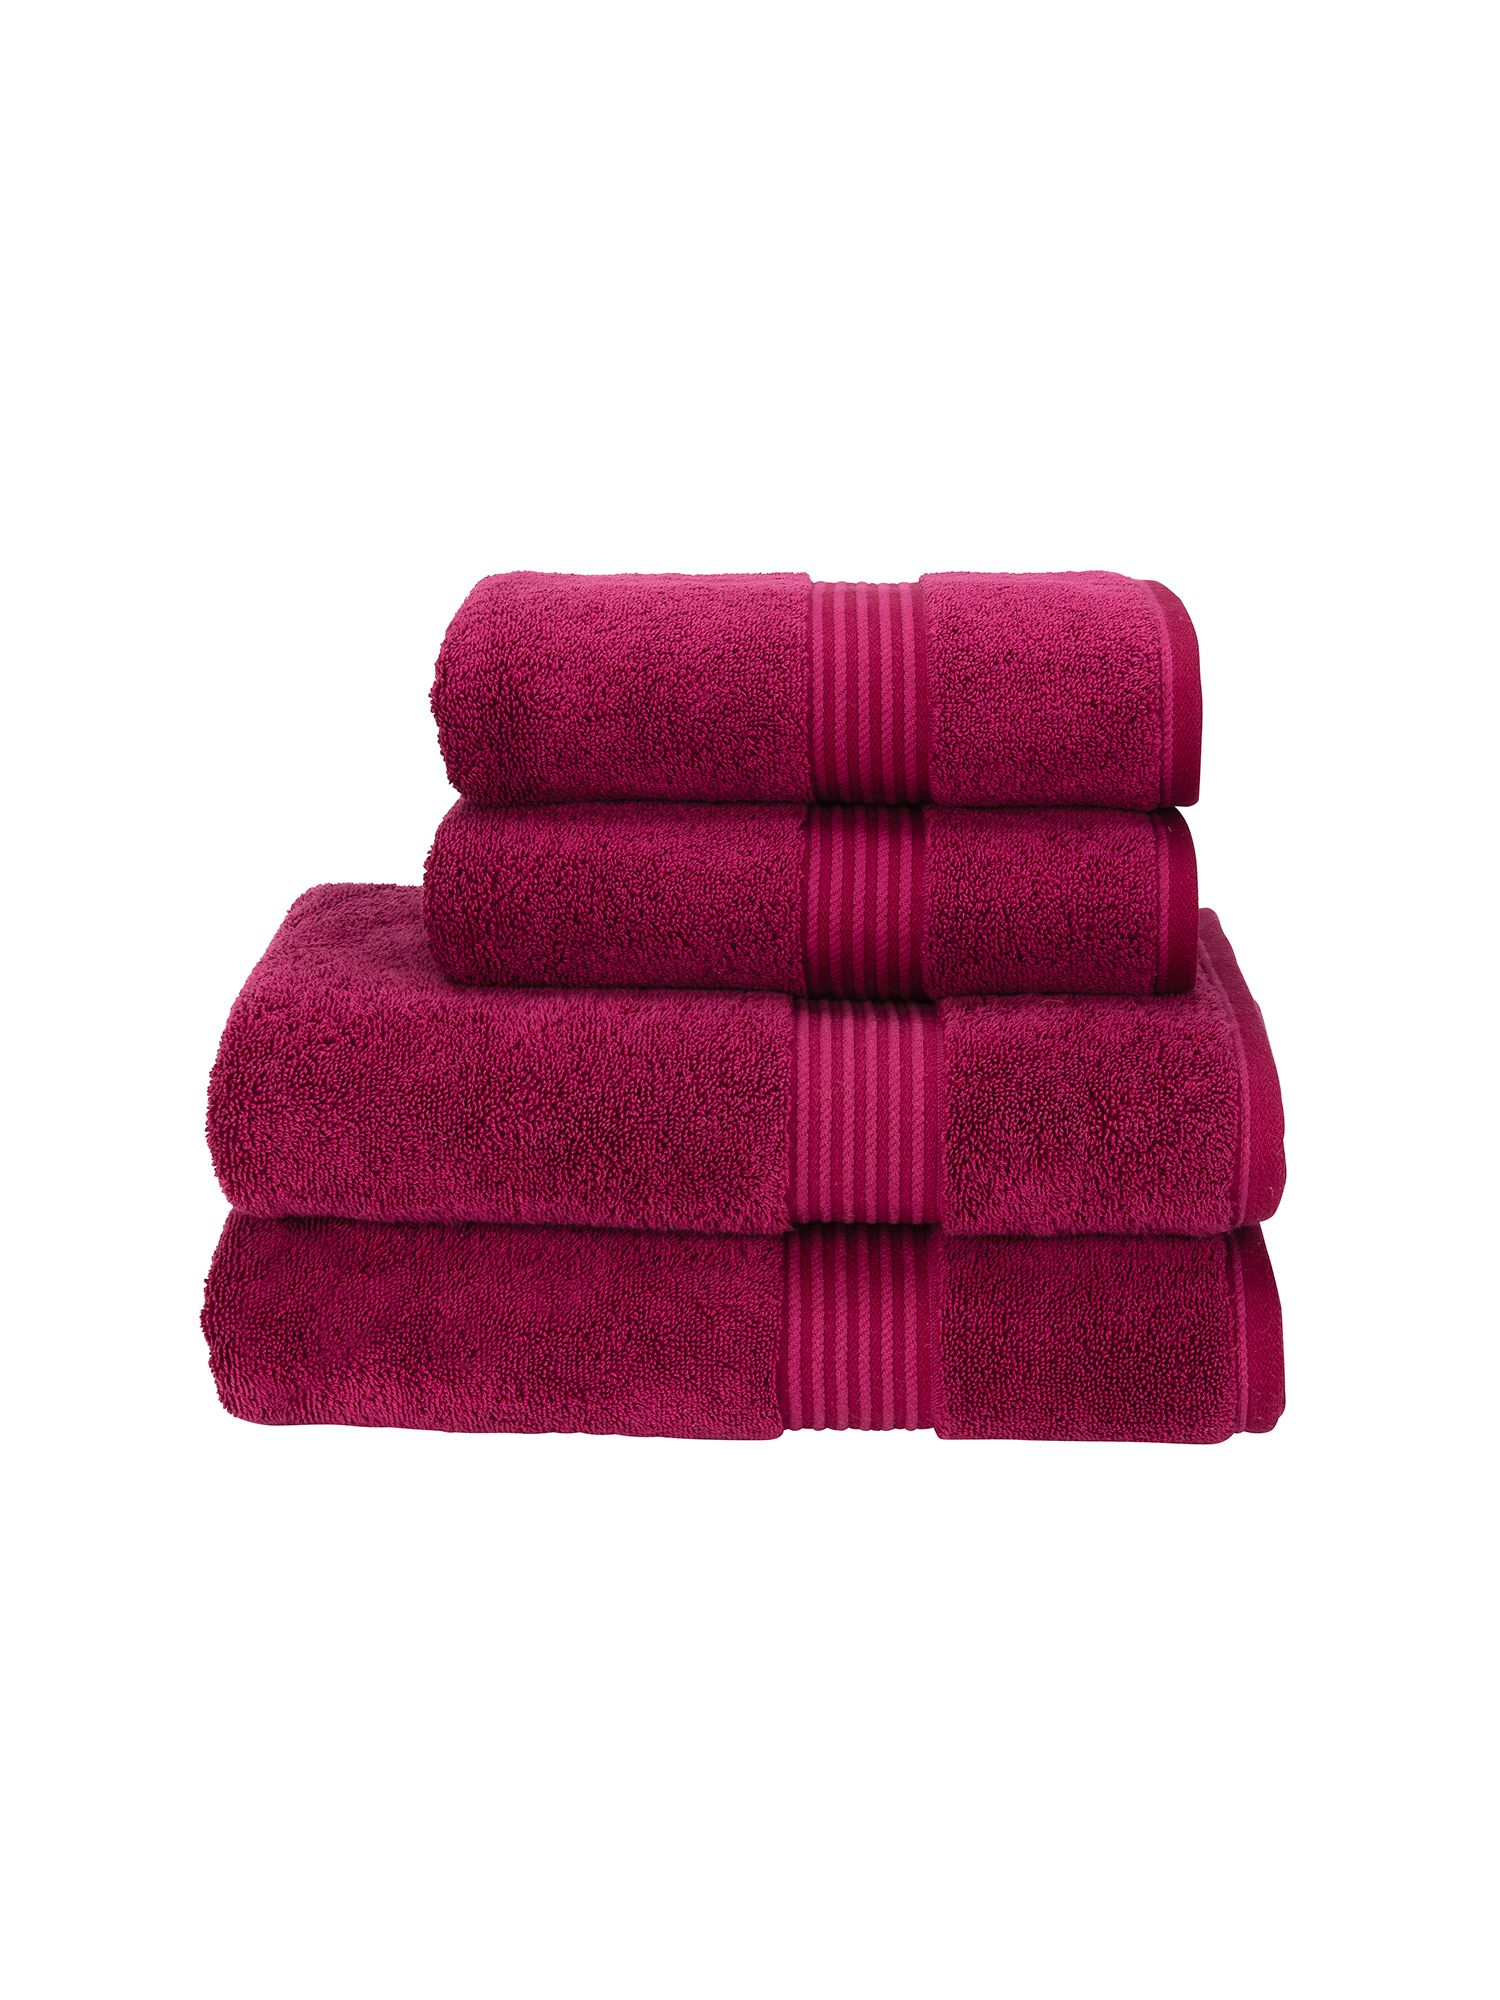 Supreme hygro towels raspberry